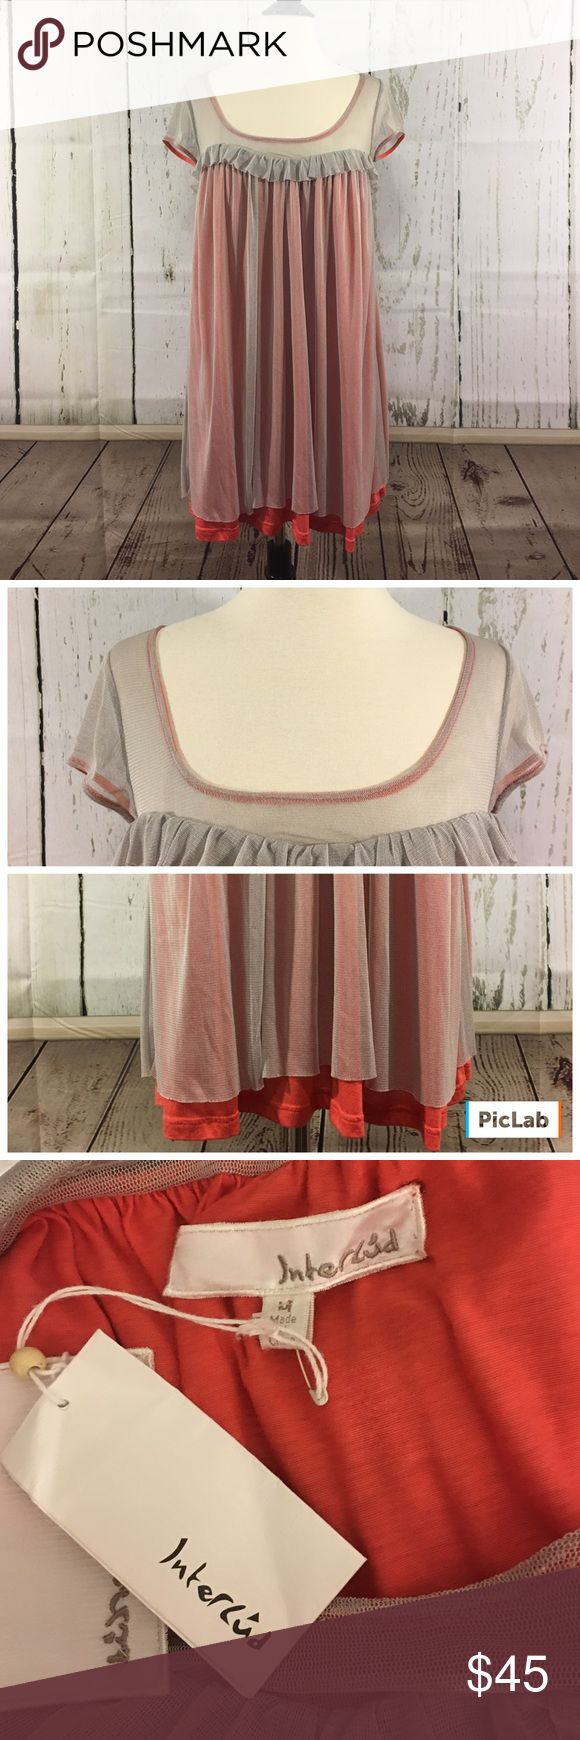 """🎀🆕Interlud Silk Chiffon Layered Dress/Tunic🎀 This gorgeous dress or tunic, can be worn either way has a beautiful, pale gray colored silk chiffon layer on top and underneath is an orange lining made of 95% rayon and 5% wool and it's by Interlud which is an Anthropologie label. The length of this dress/tunic is 33"""" and it's new with tags attached. Anthropologie Dresses"""